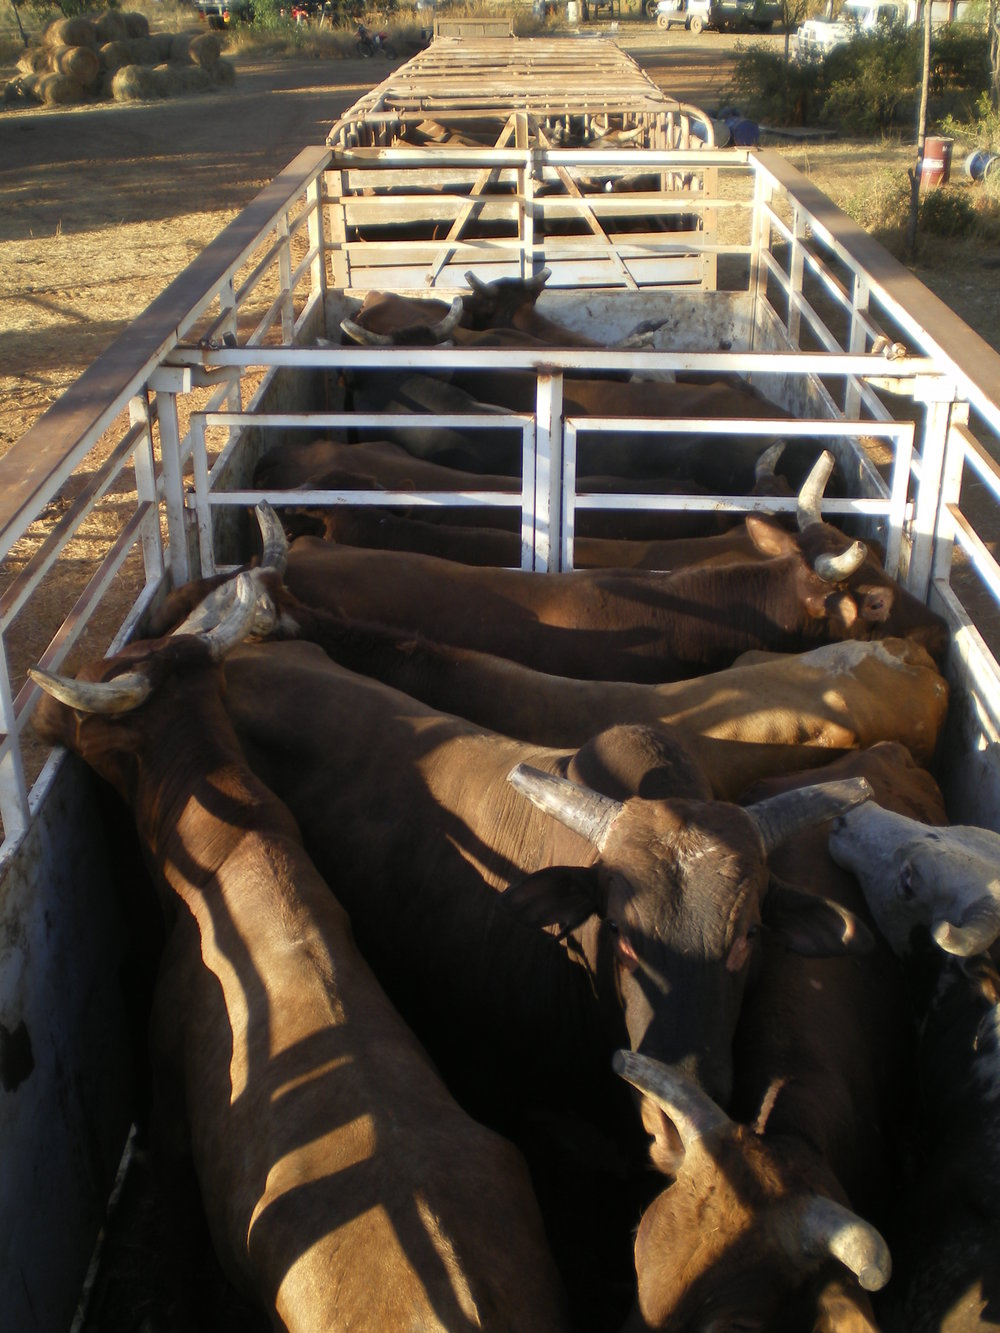 A truck load of bulls caught at Lorella Springs, image courtesy Lisa Shannon.